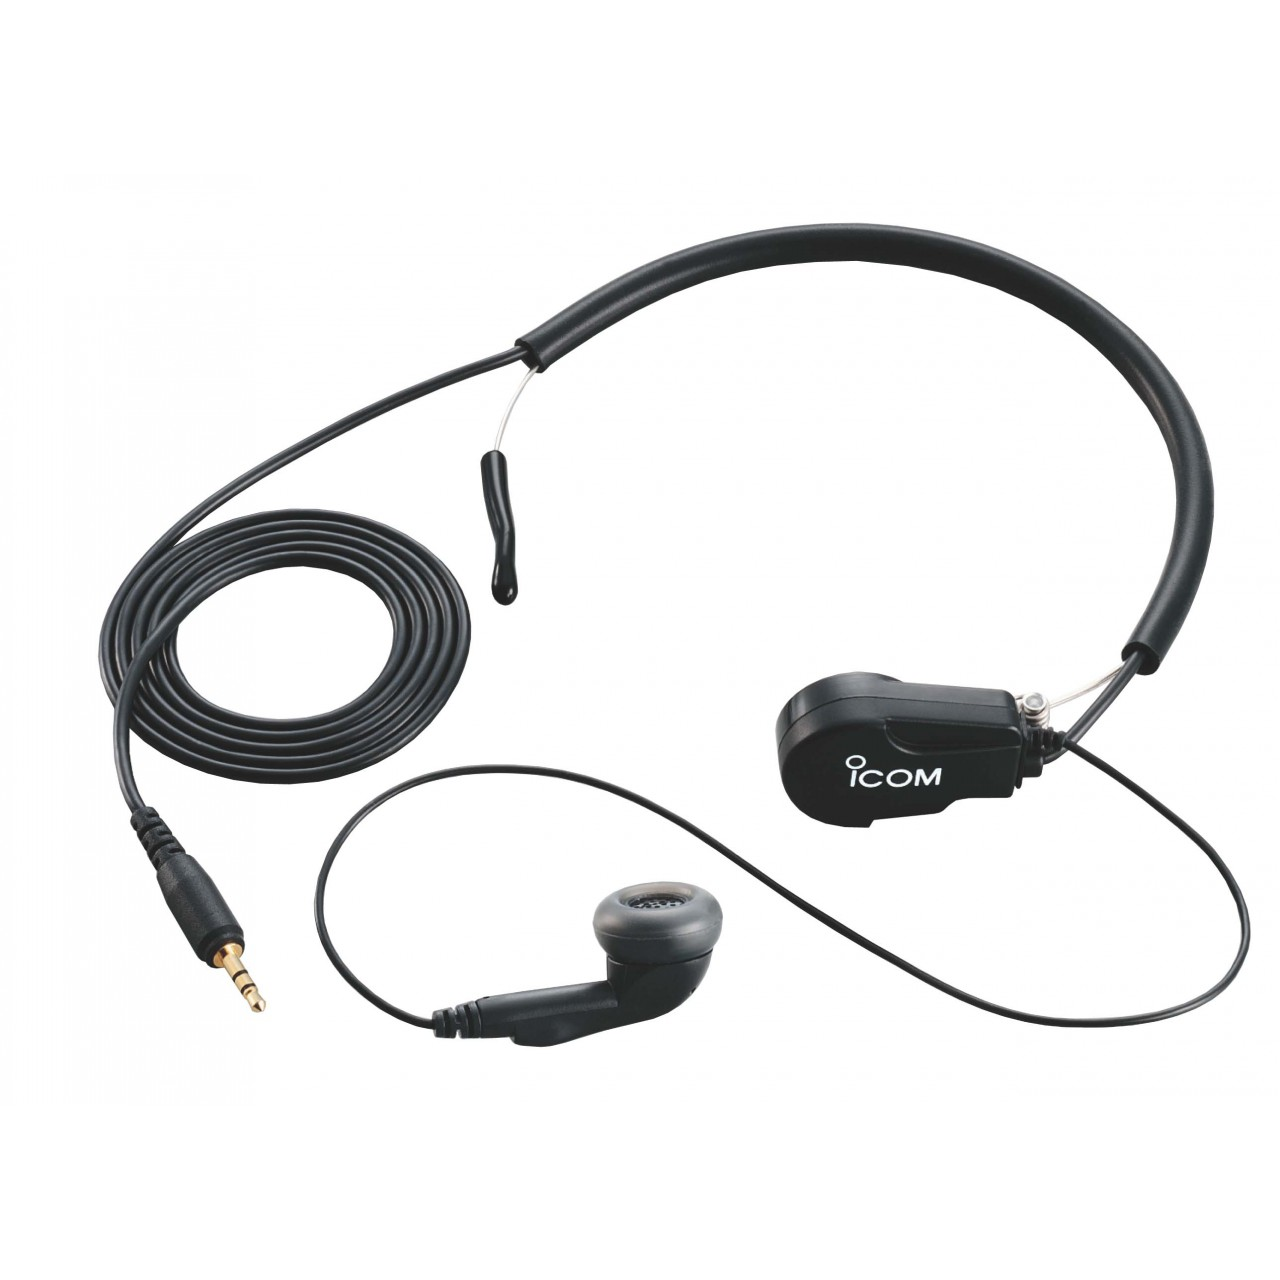 HS-97 Headsets and earphones - ICOM